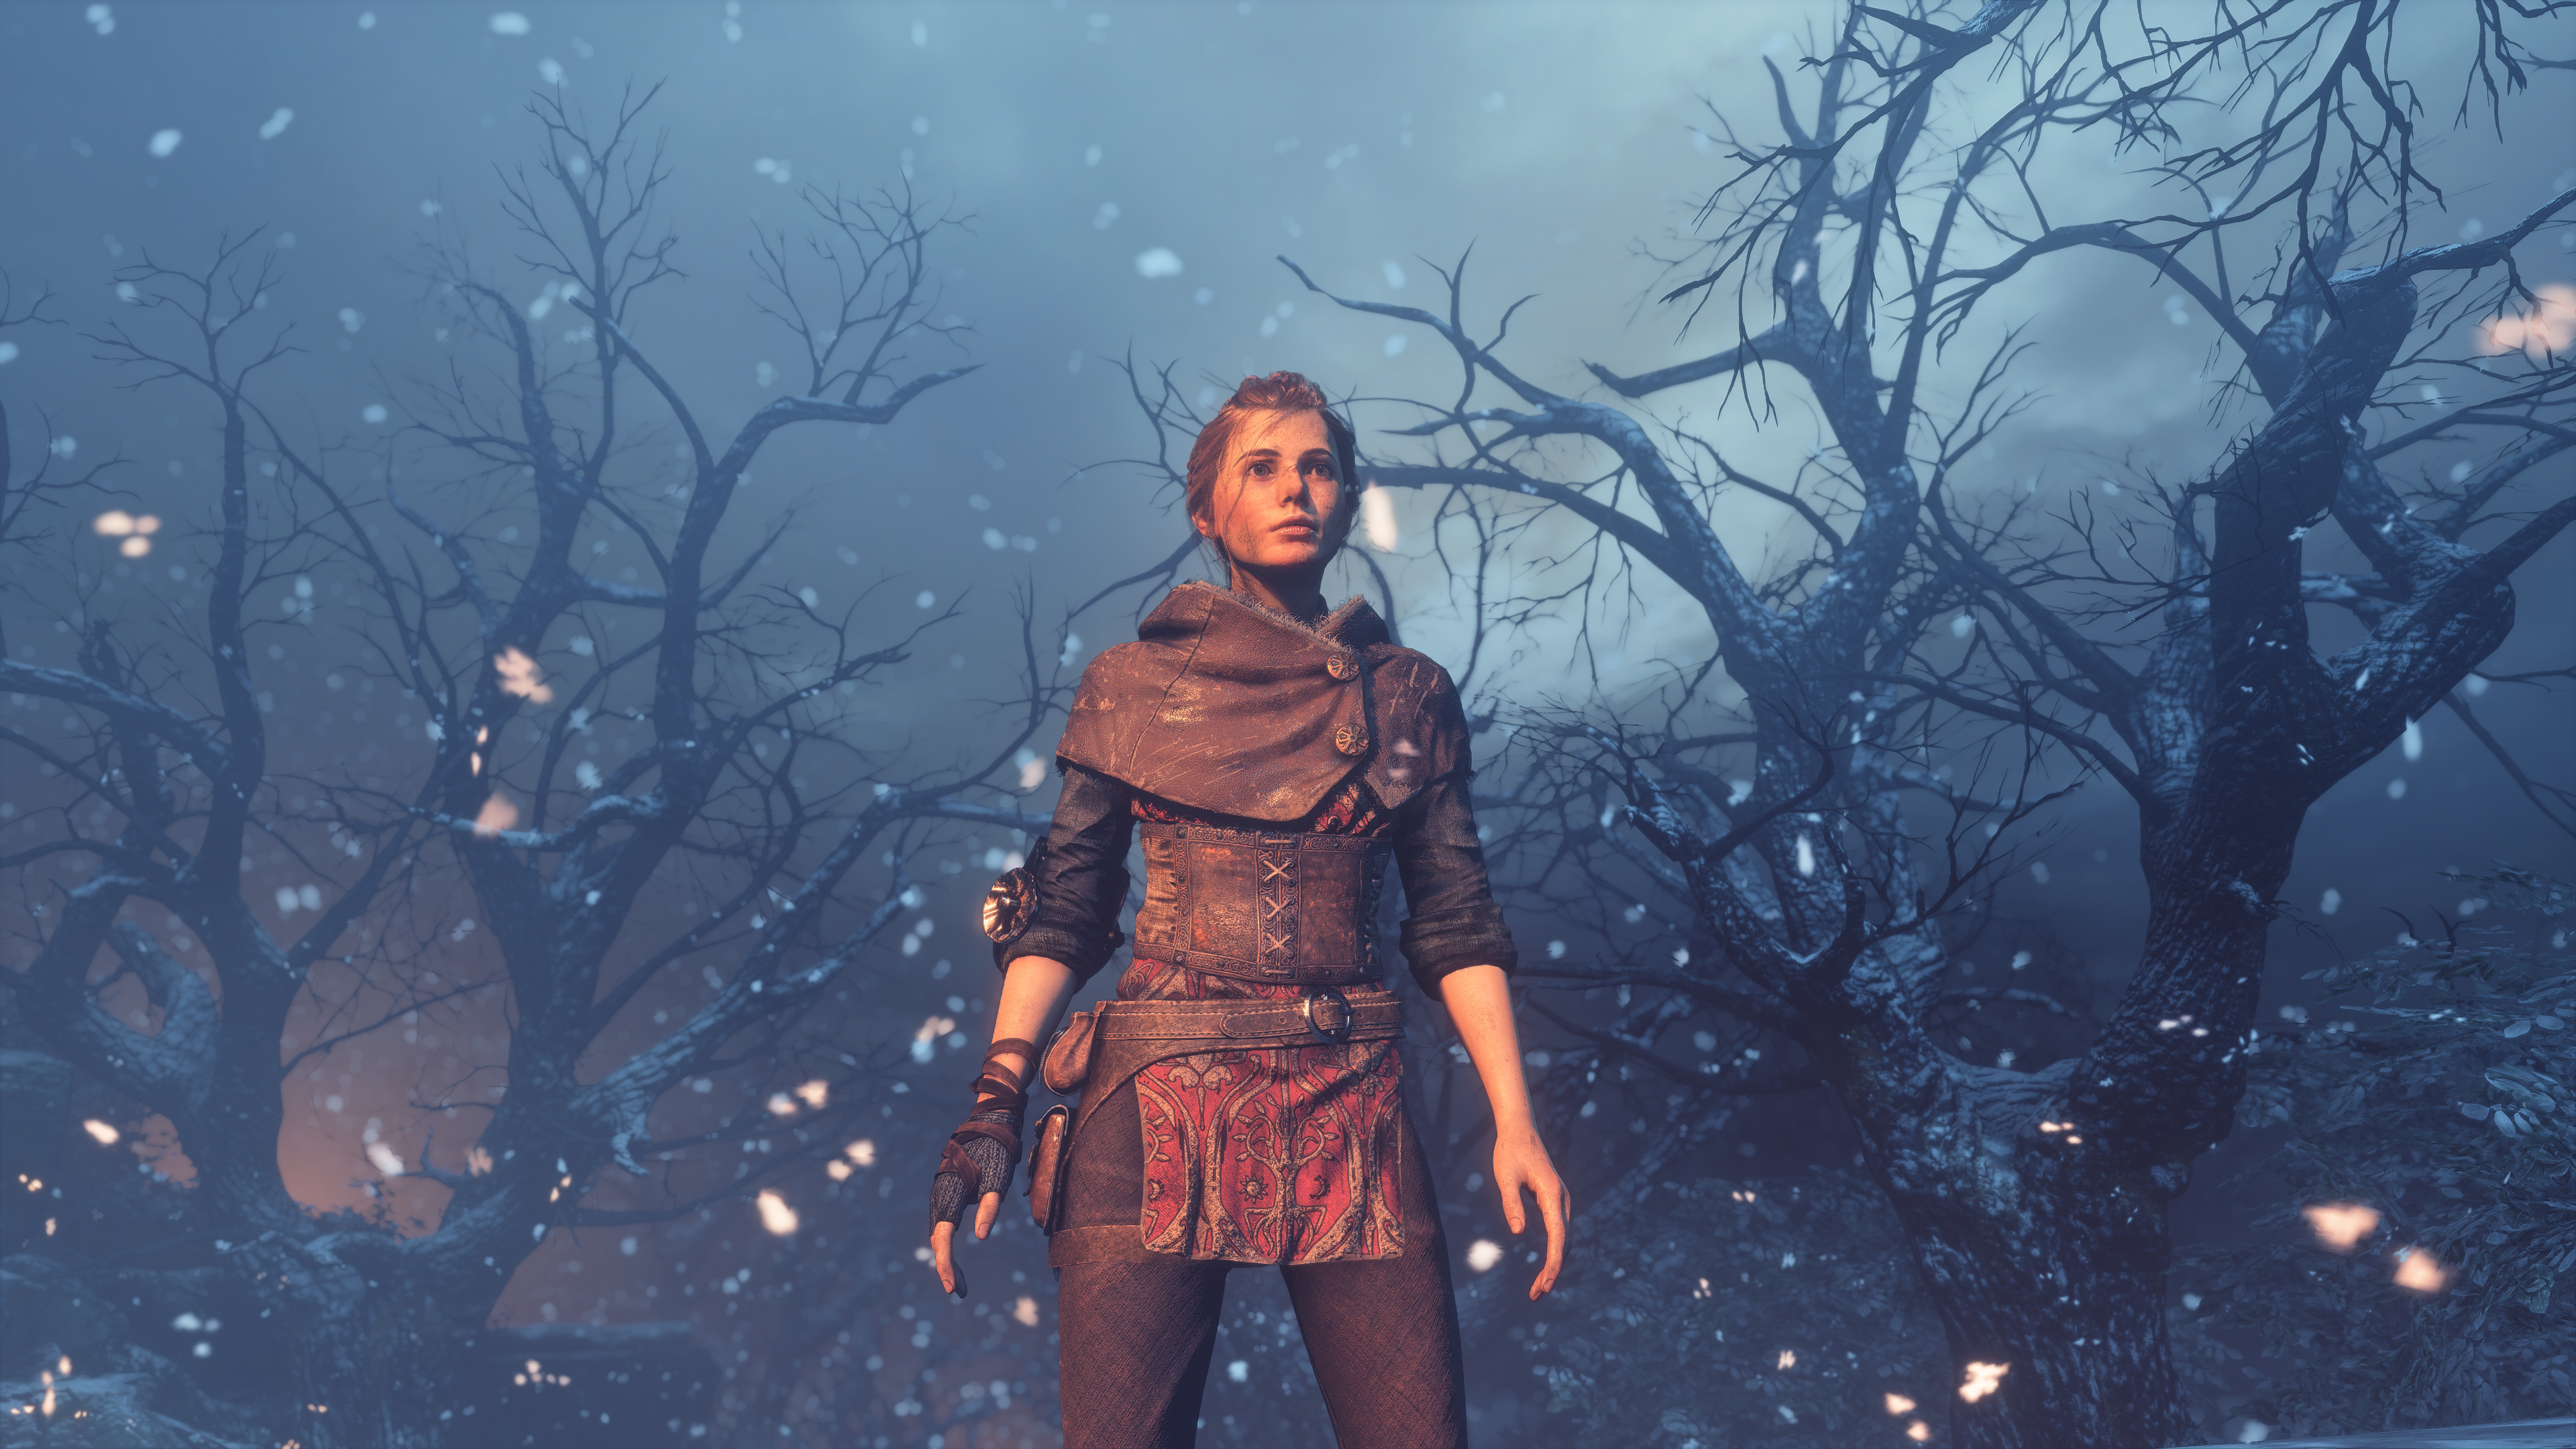 lost somewhere a plague tale innocence 1568056871 - Lost Somewhere A Plague Tale Innocence - hd-wallpapers, games wallpapers, a plague tale innocence wallpapers, 5k wallpapers, 4k-wallpapers, 2019 games wallpapers